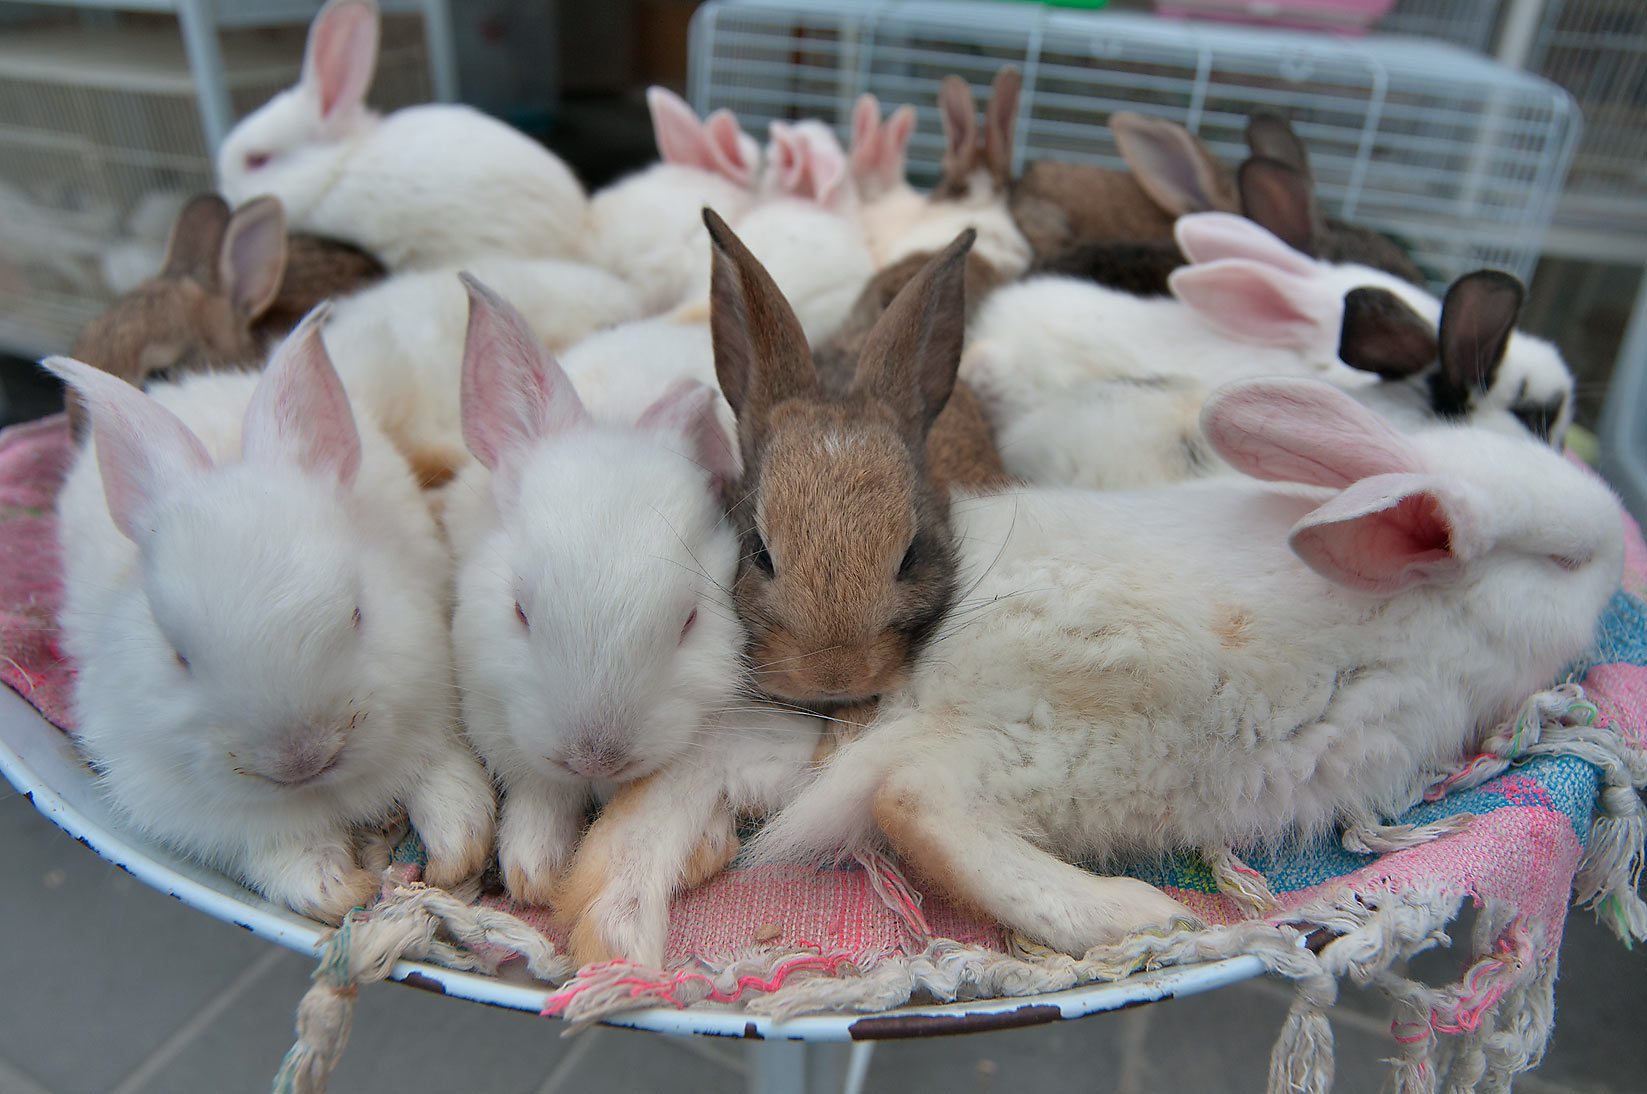 Rabbits in pet market in Souq Waqif. Doha, Qatar